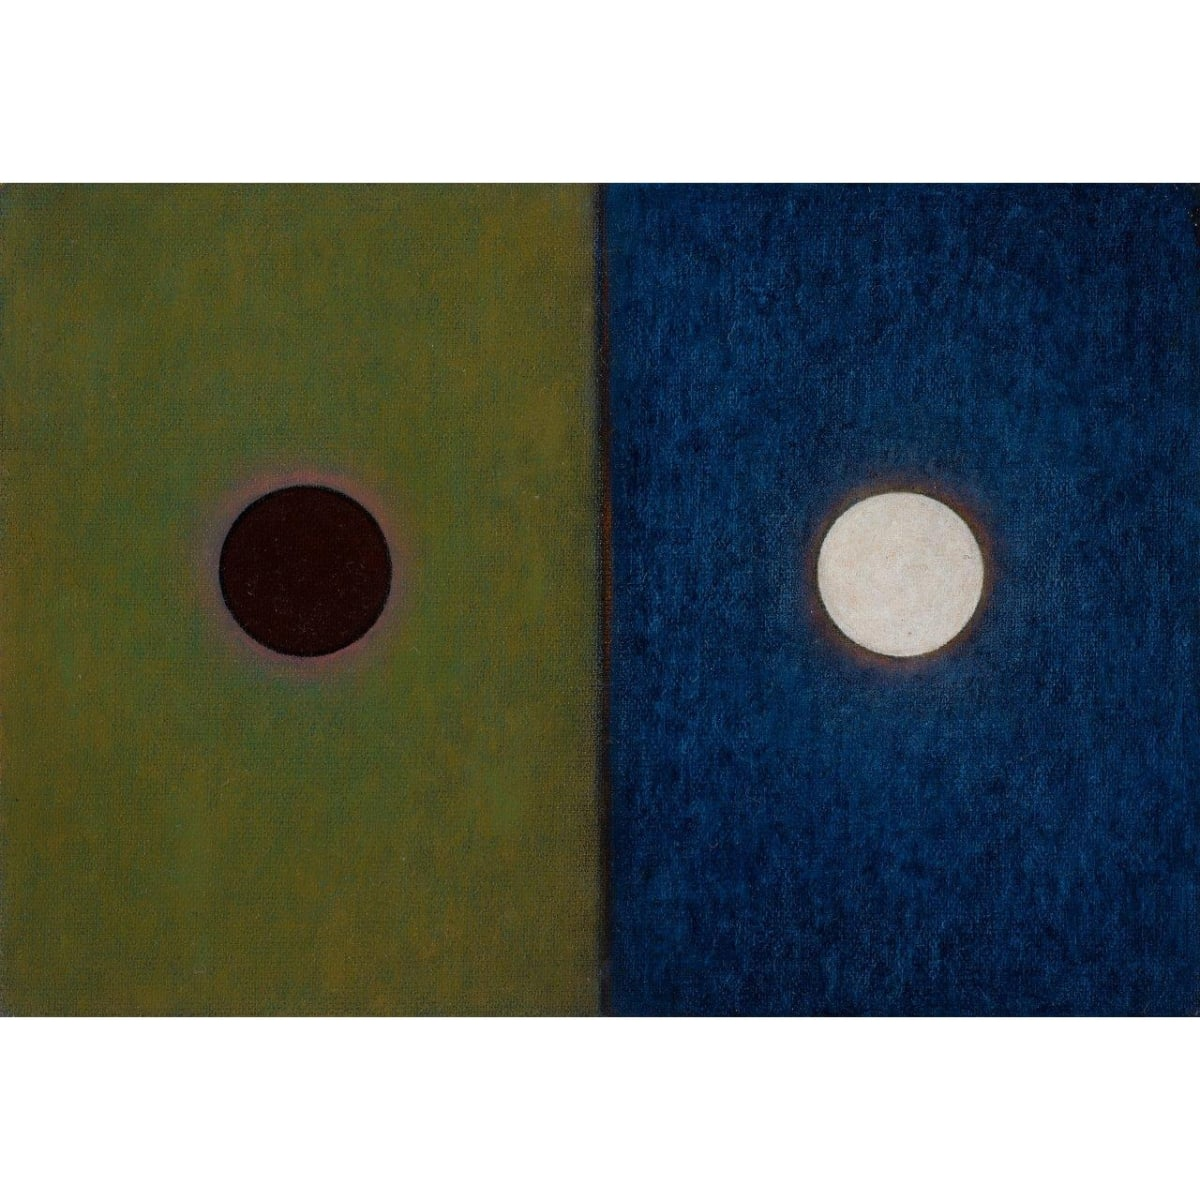 Emma Alcock Studies for Circles (1-3), 2015 oil on canvas 18 x 25 cm each